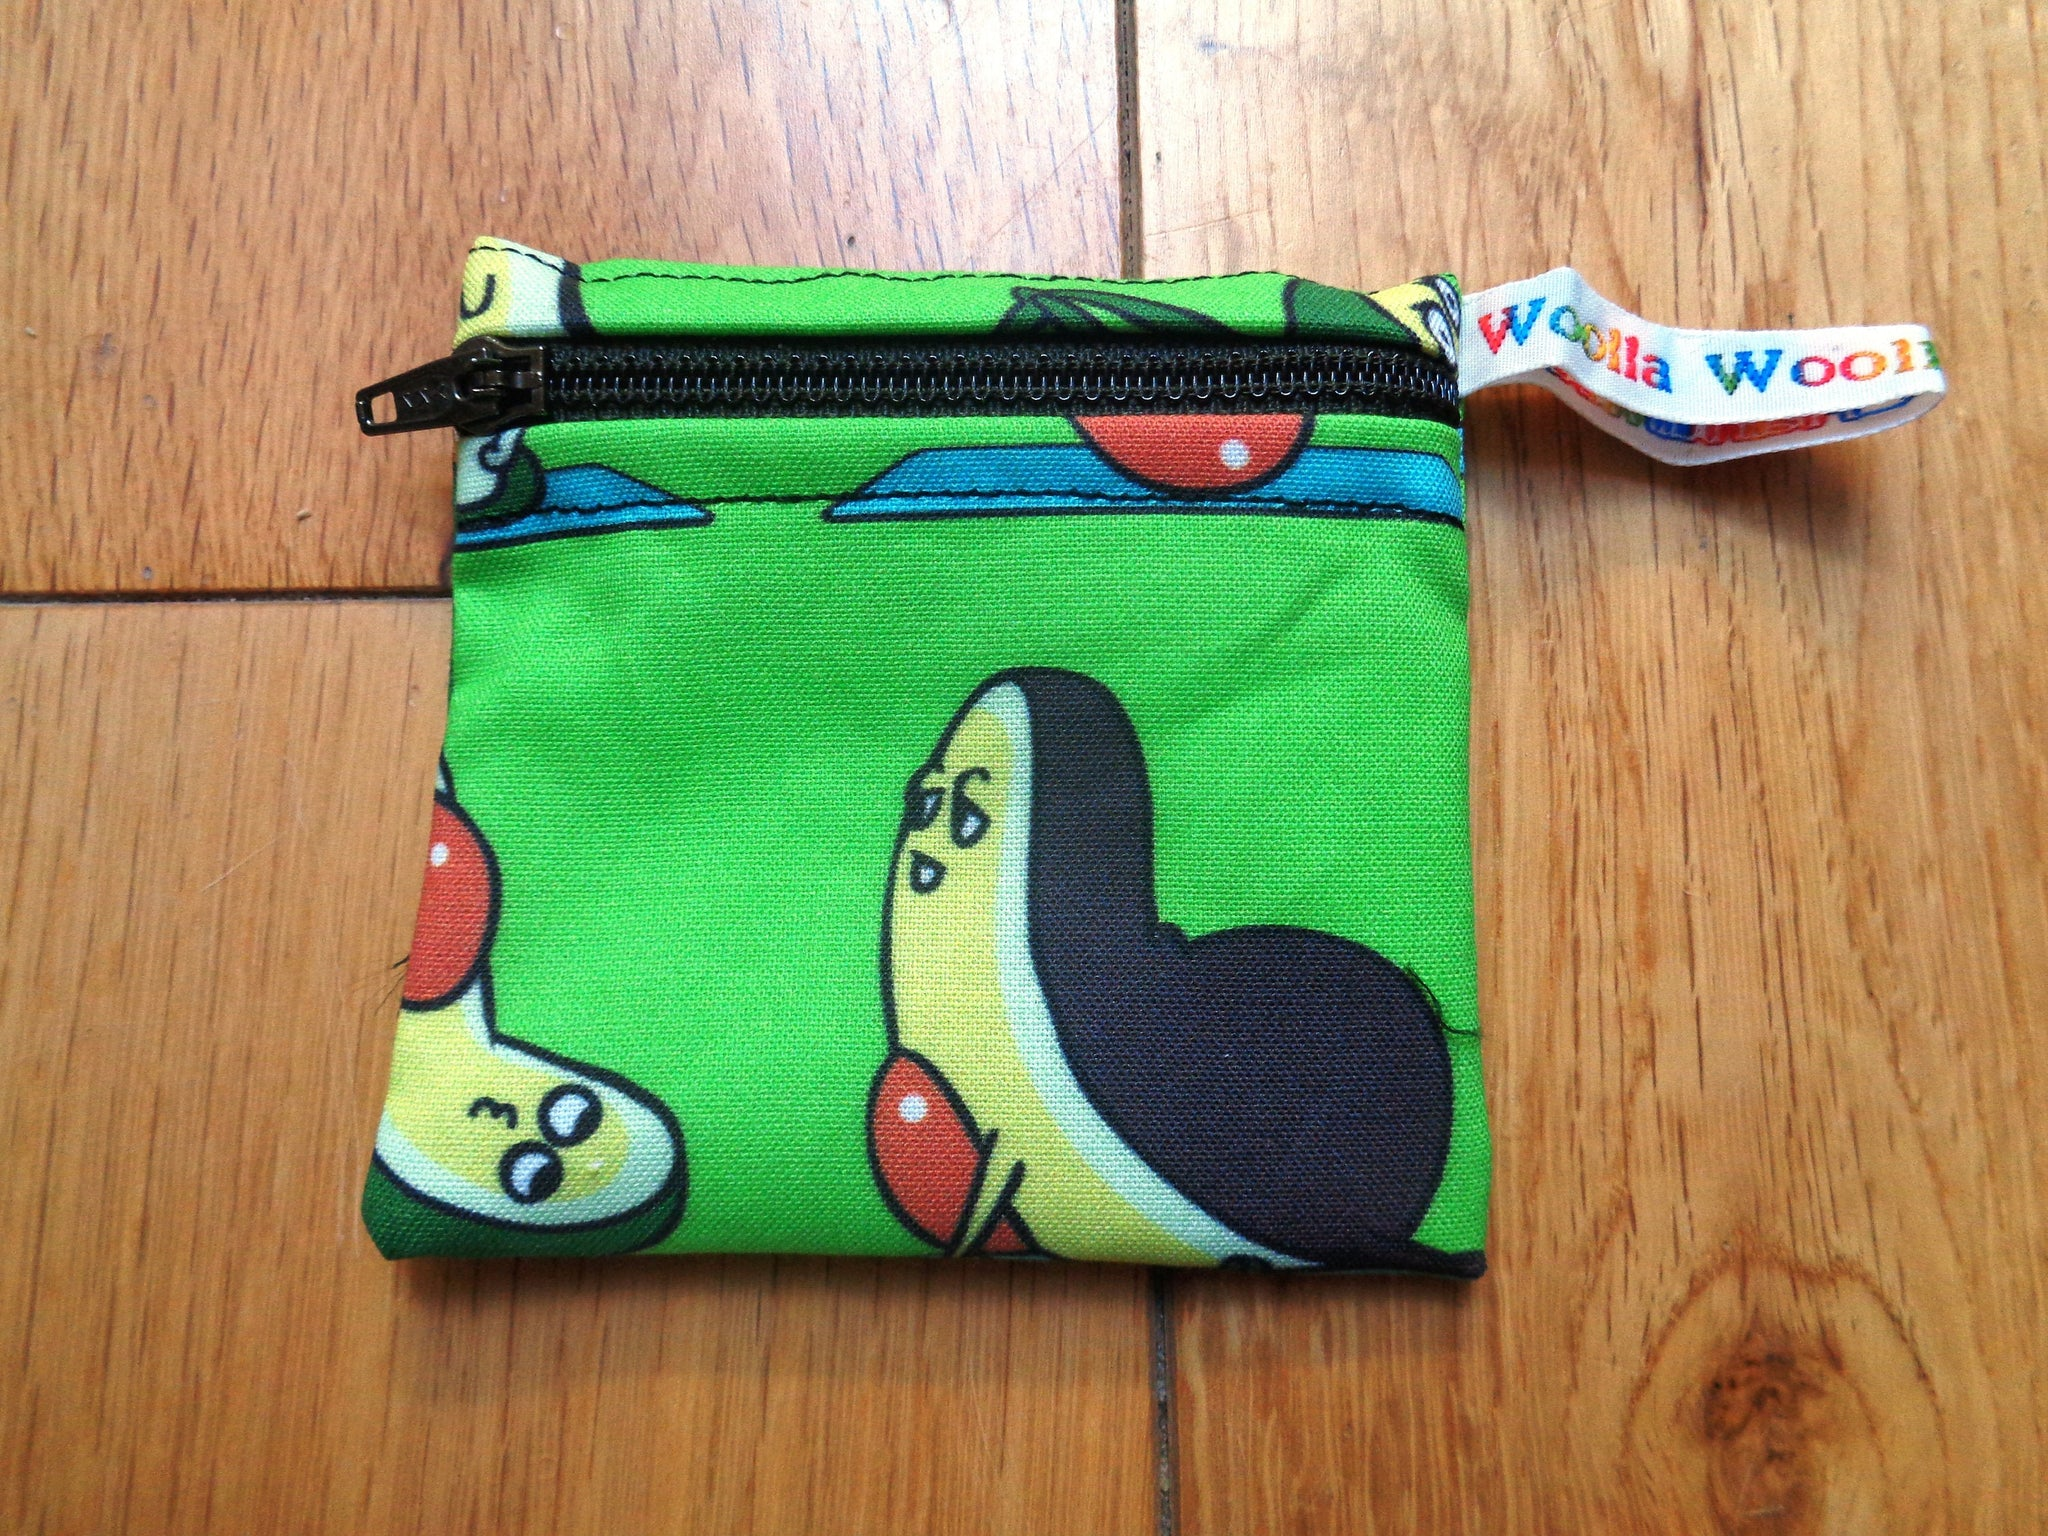 Avocado Yoga 3 - Pippins Poppins Pouch Snack Pouch, Coin Purse, Ear Bud Case